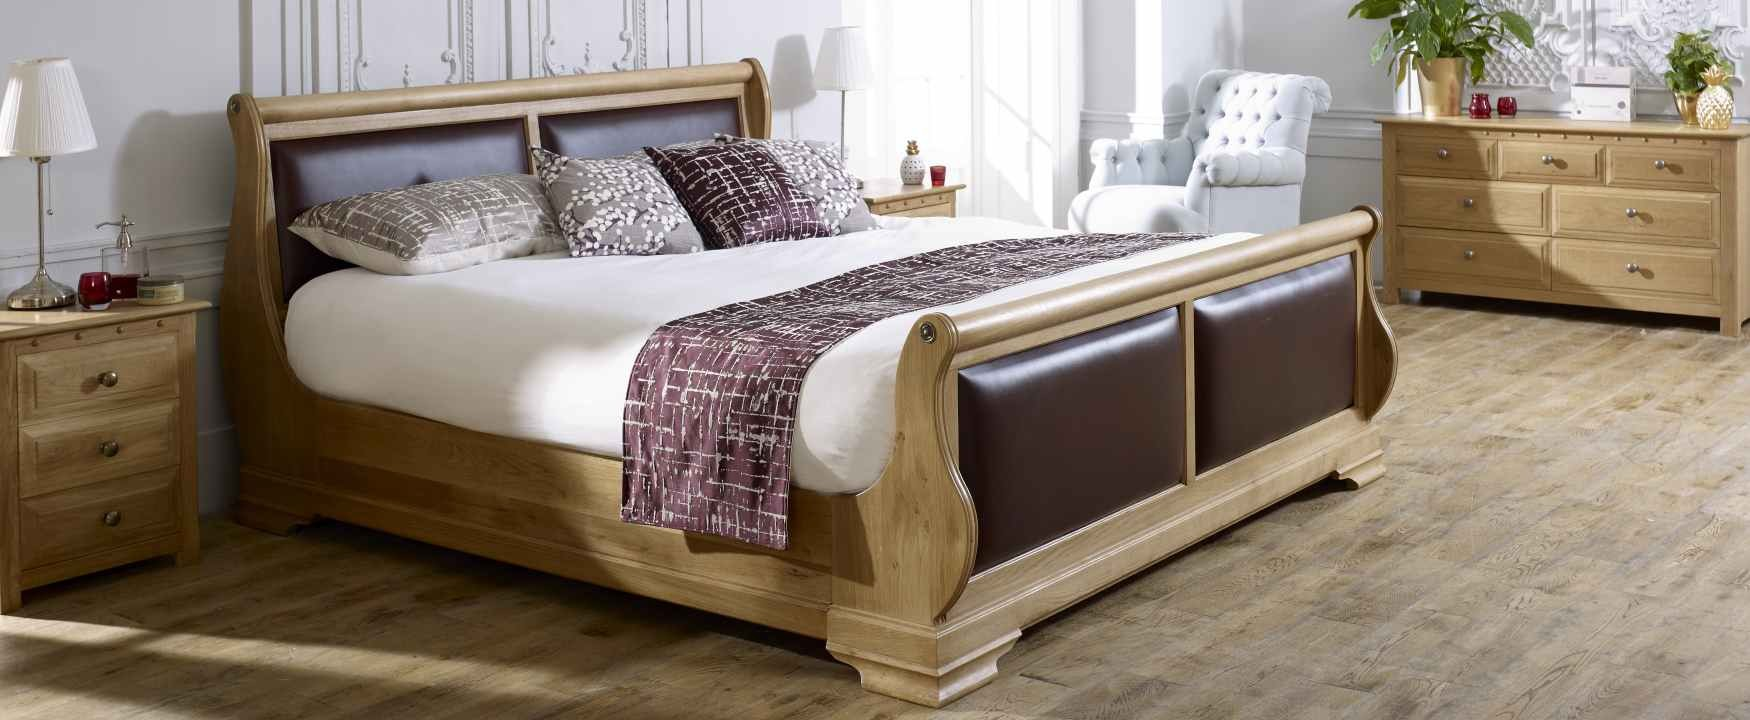 Can Bed Bugs Live In Wood Furniture